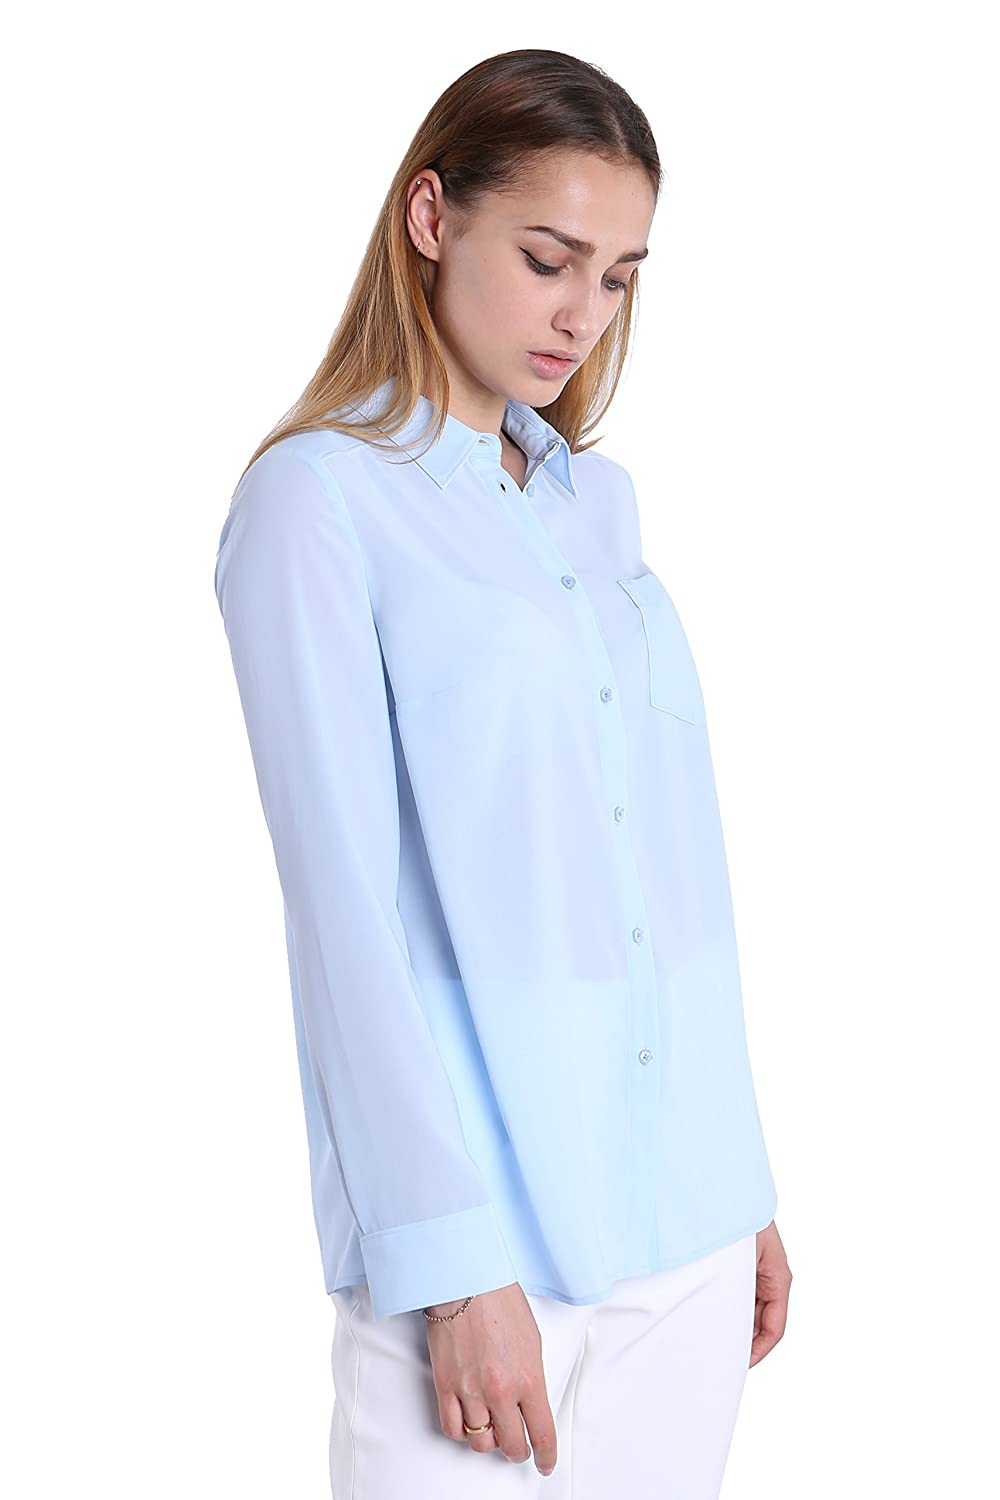 9ad82f21123cf Fyriona Women s Button Down Shirt Chiffon Blouse Basic Long Sleeve at  Amazon Women s Clothing store